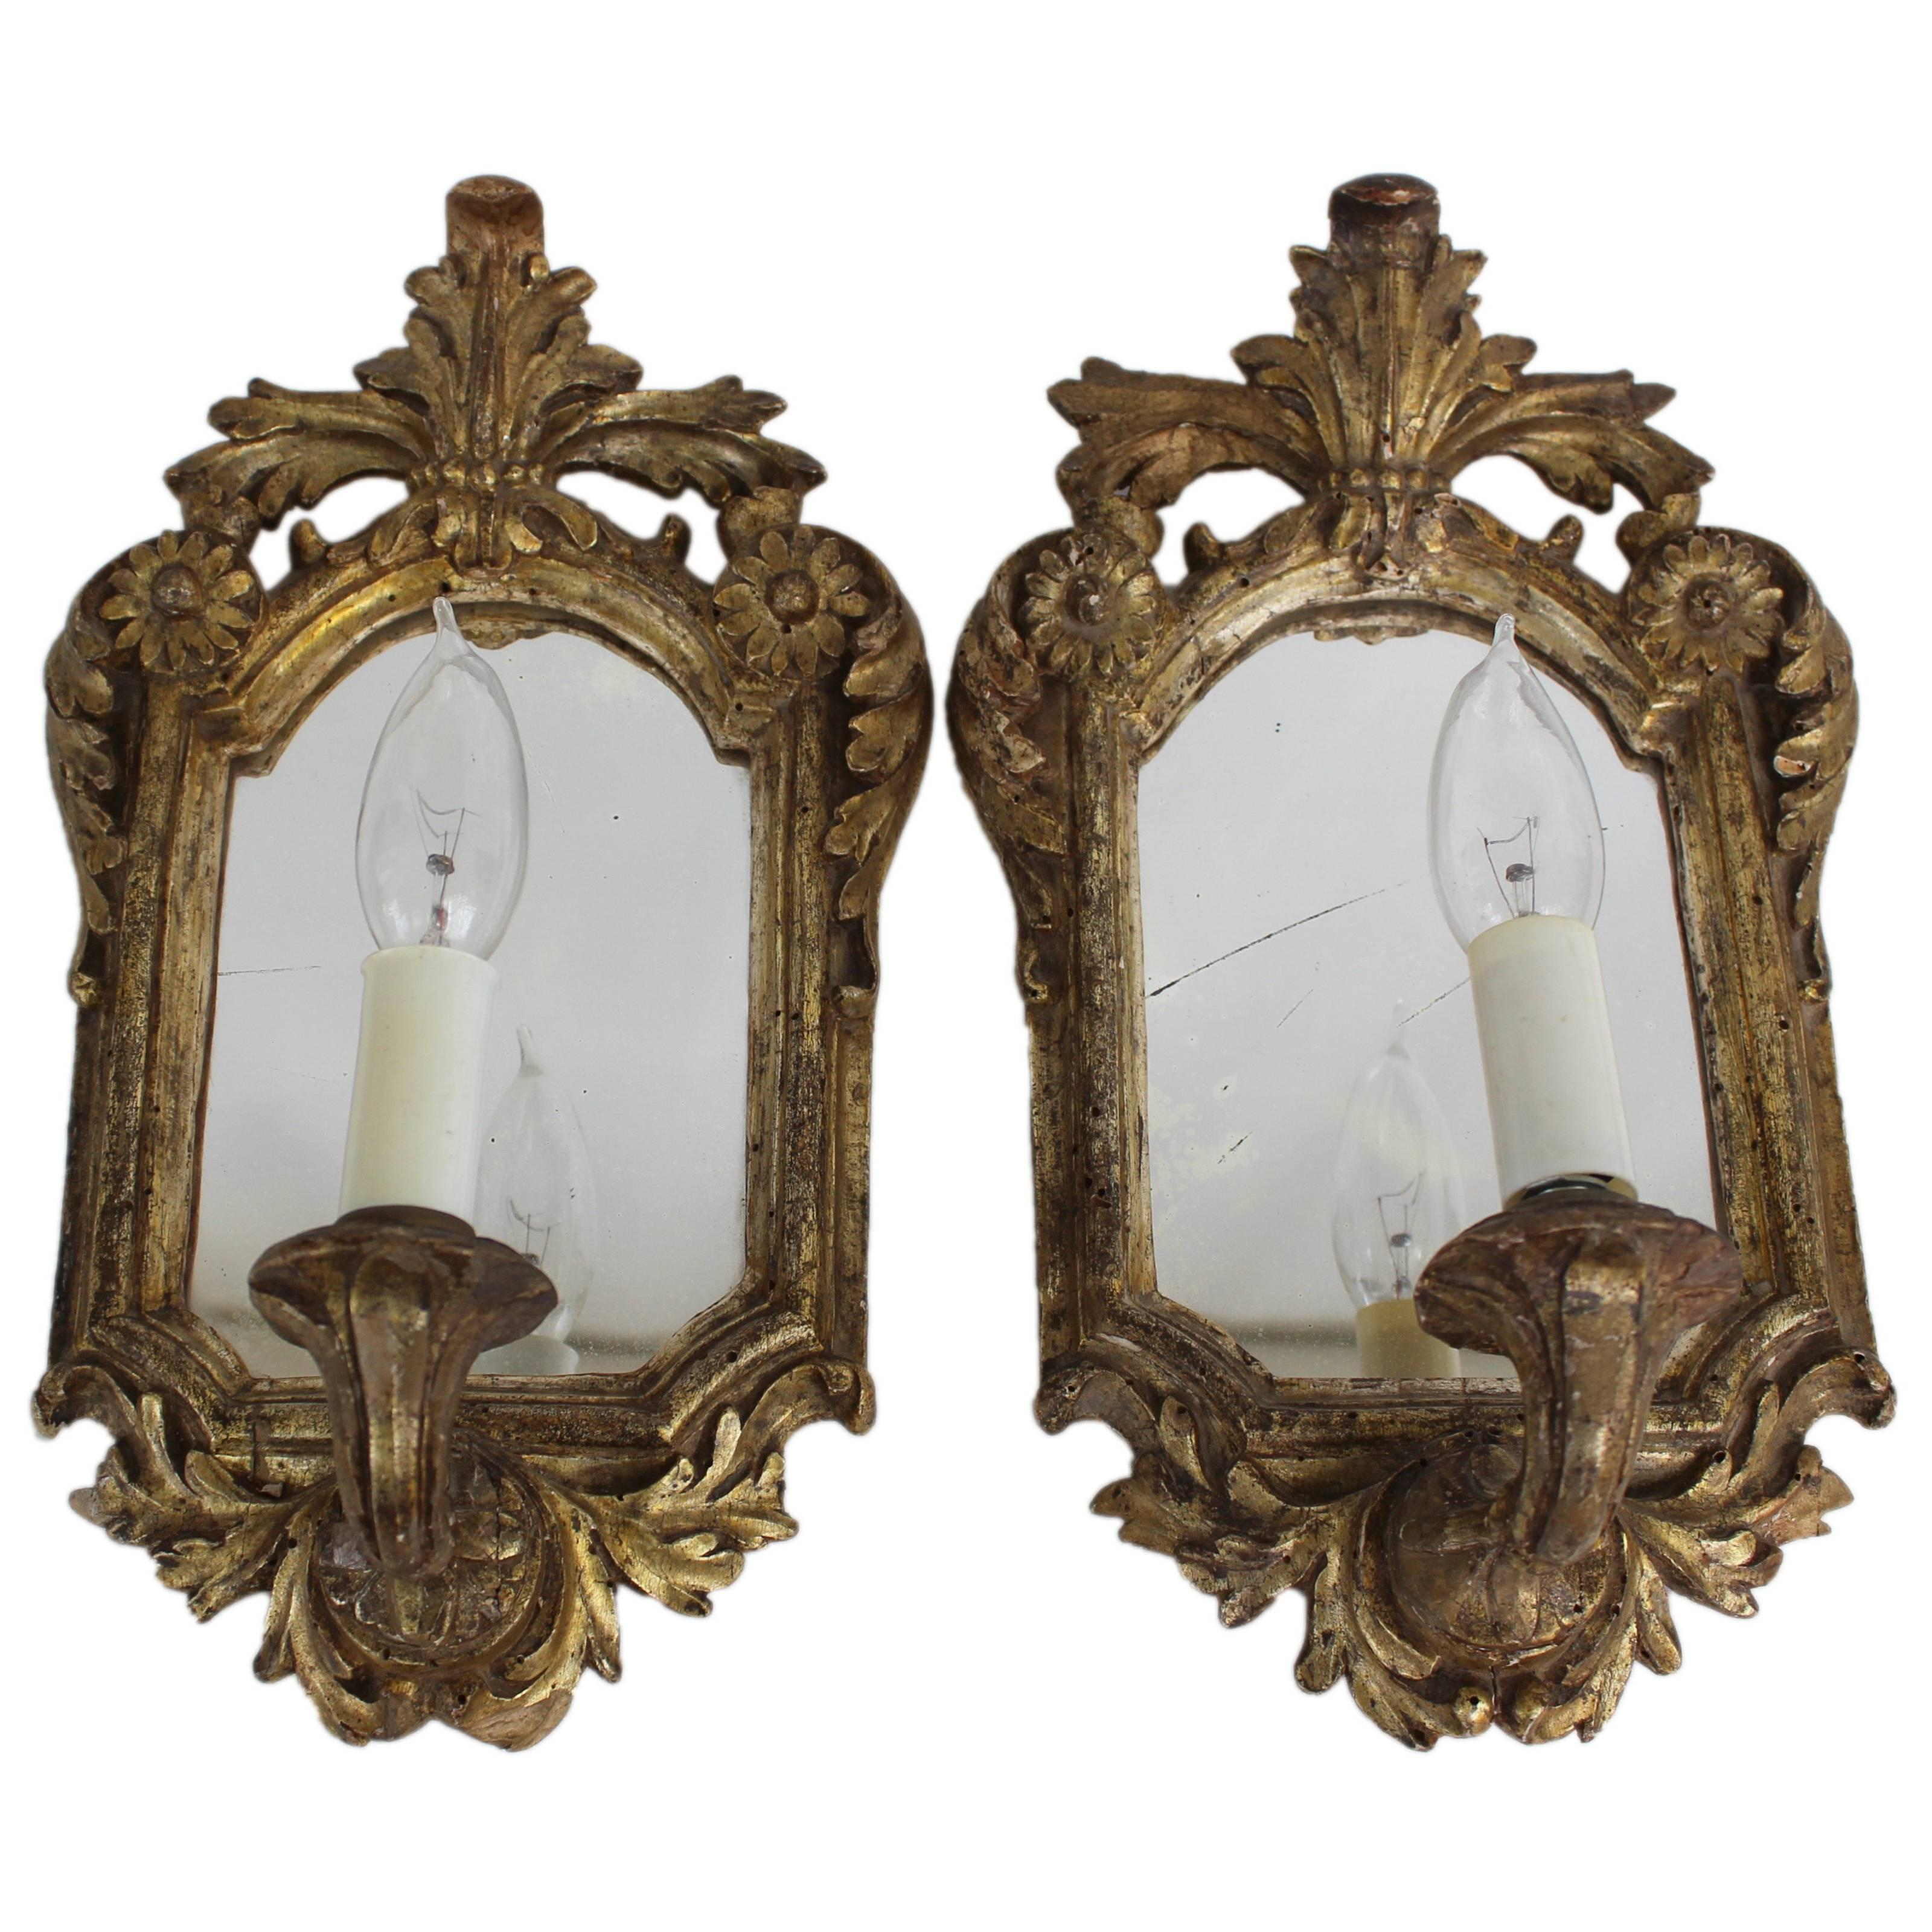 Pair of Antique Mirrored and Electrified Giltwood Sconces